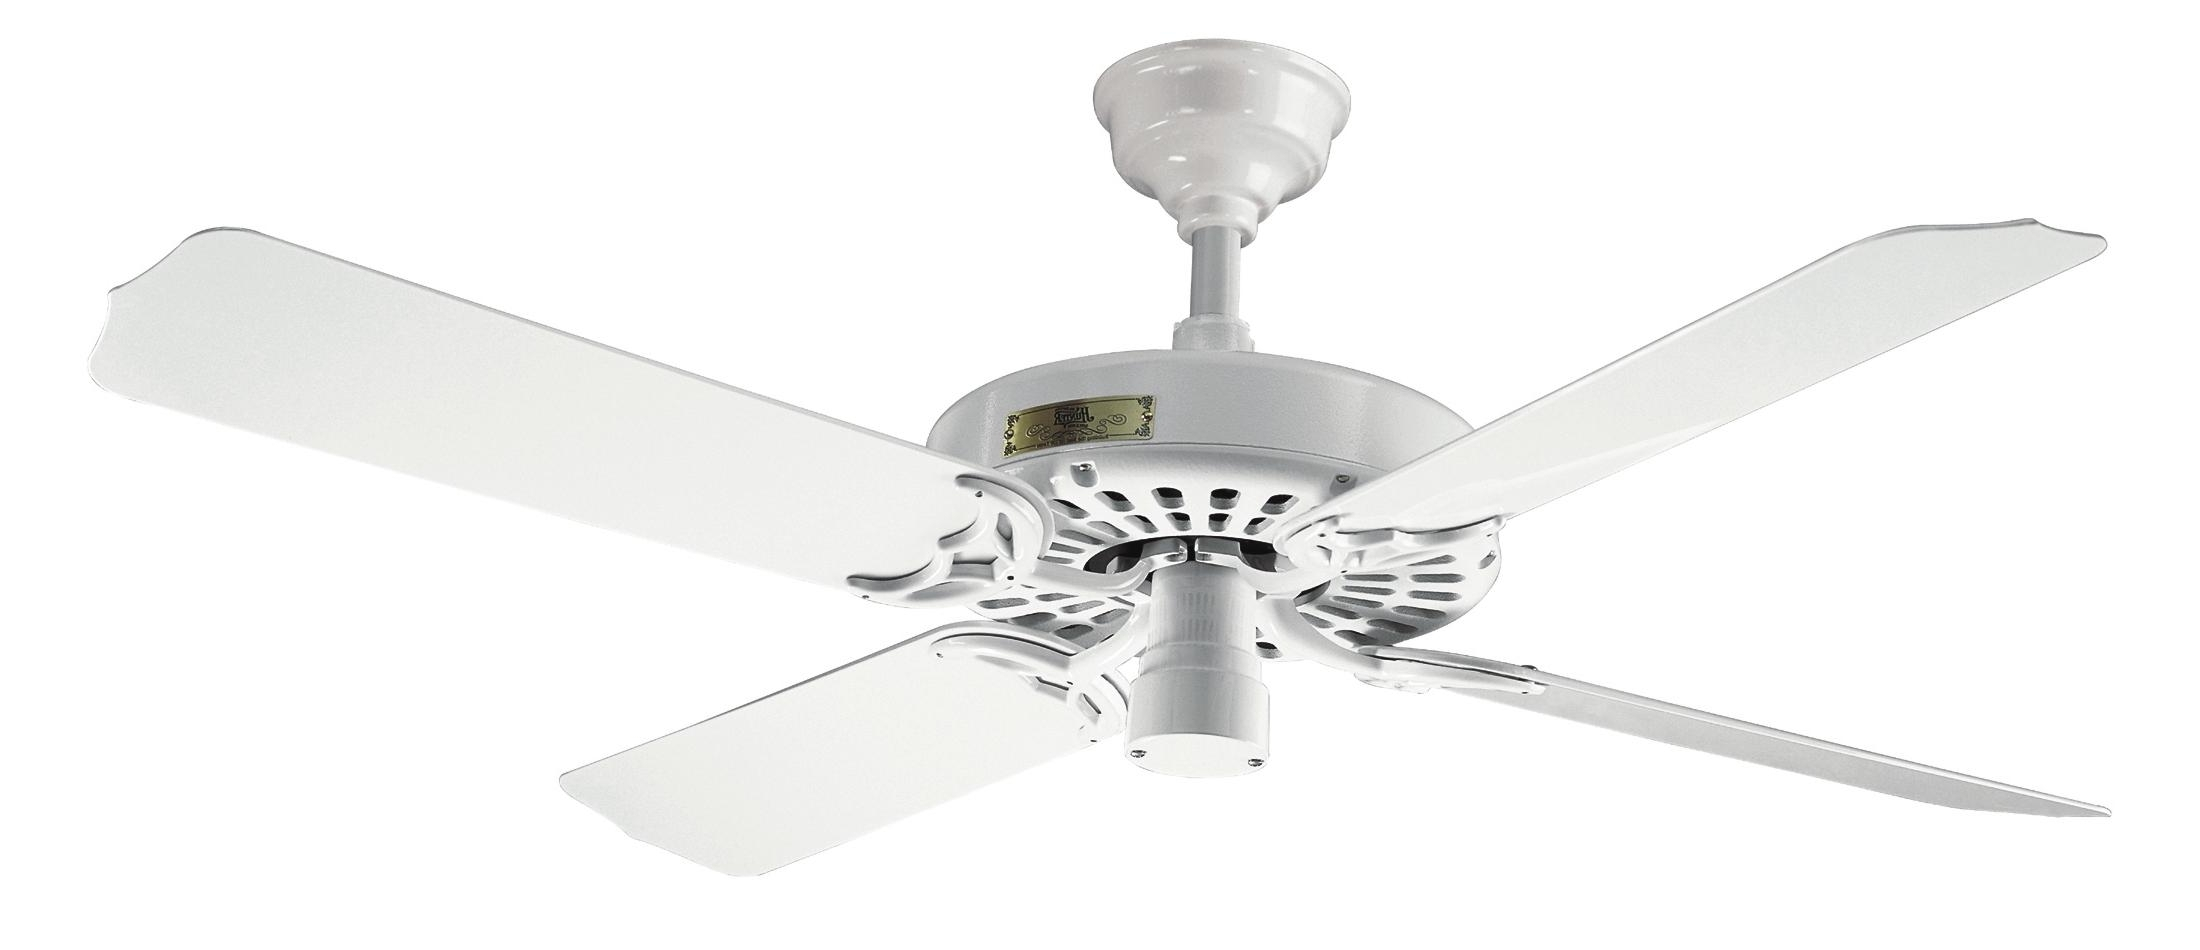 Popular Hunter Outdoor Original White Ceiling Fan 25602 In White, Best In White Outdoor Ceiling Fans With Lights (View 18 of 20)